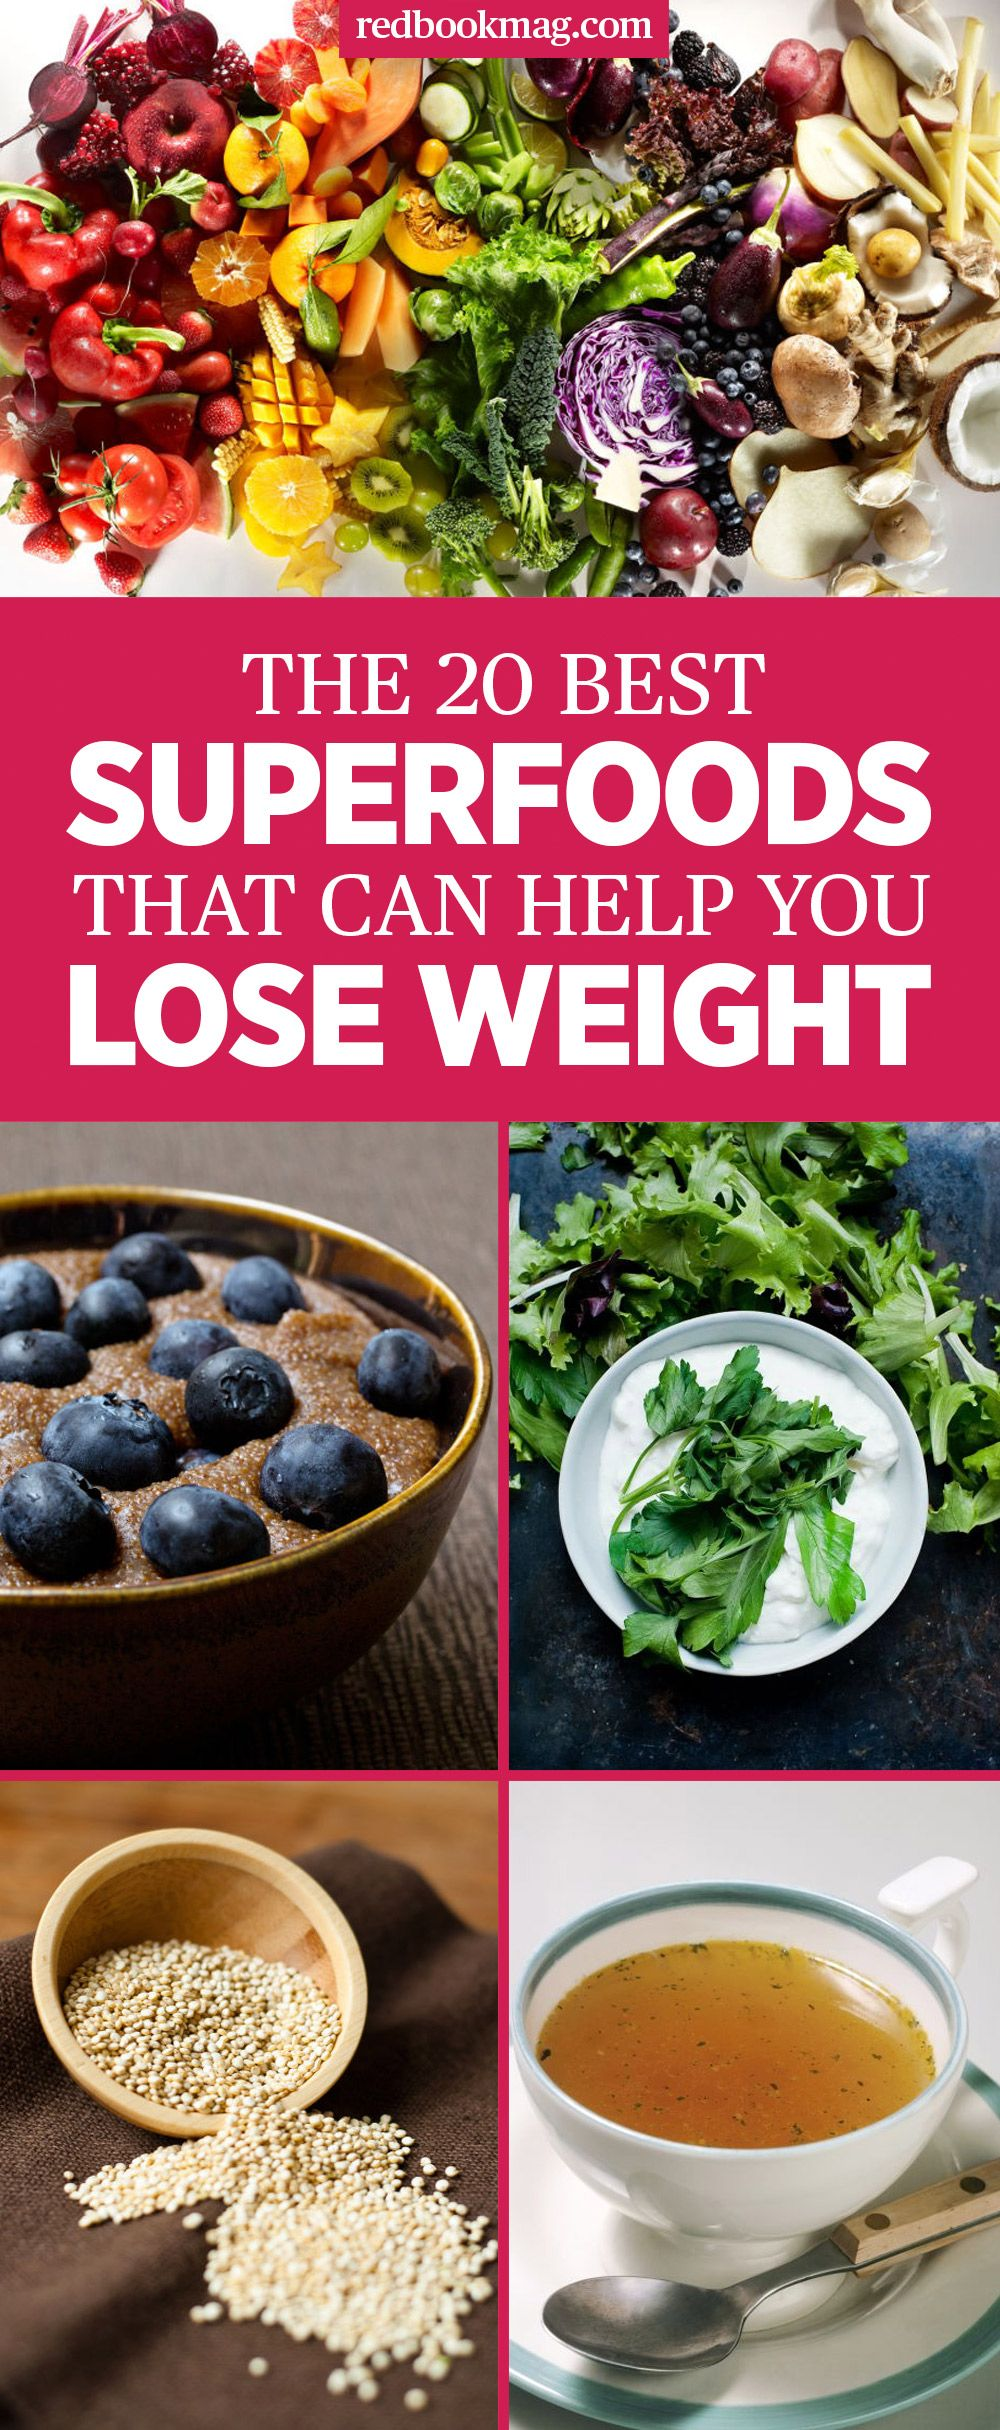 20 All-New Superfoods That Are Helping You Lose Weight